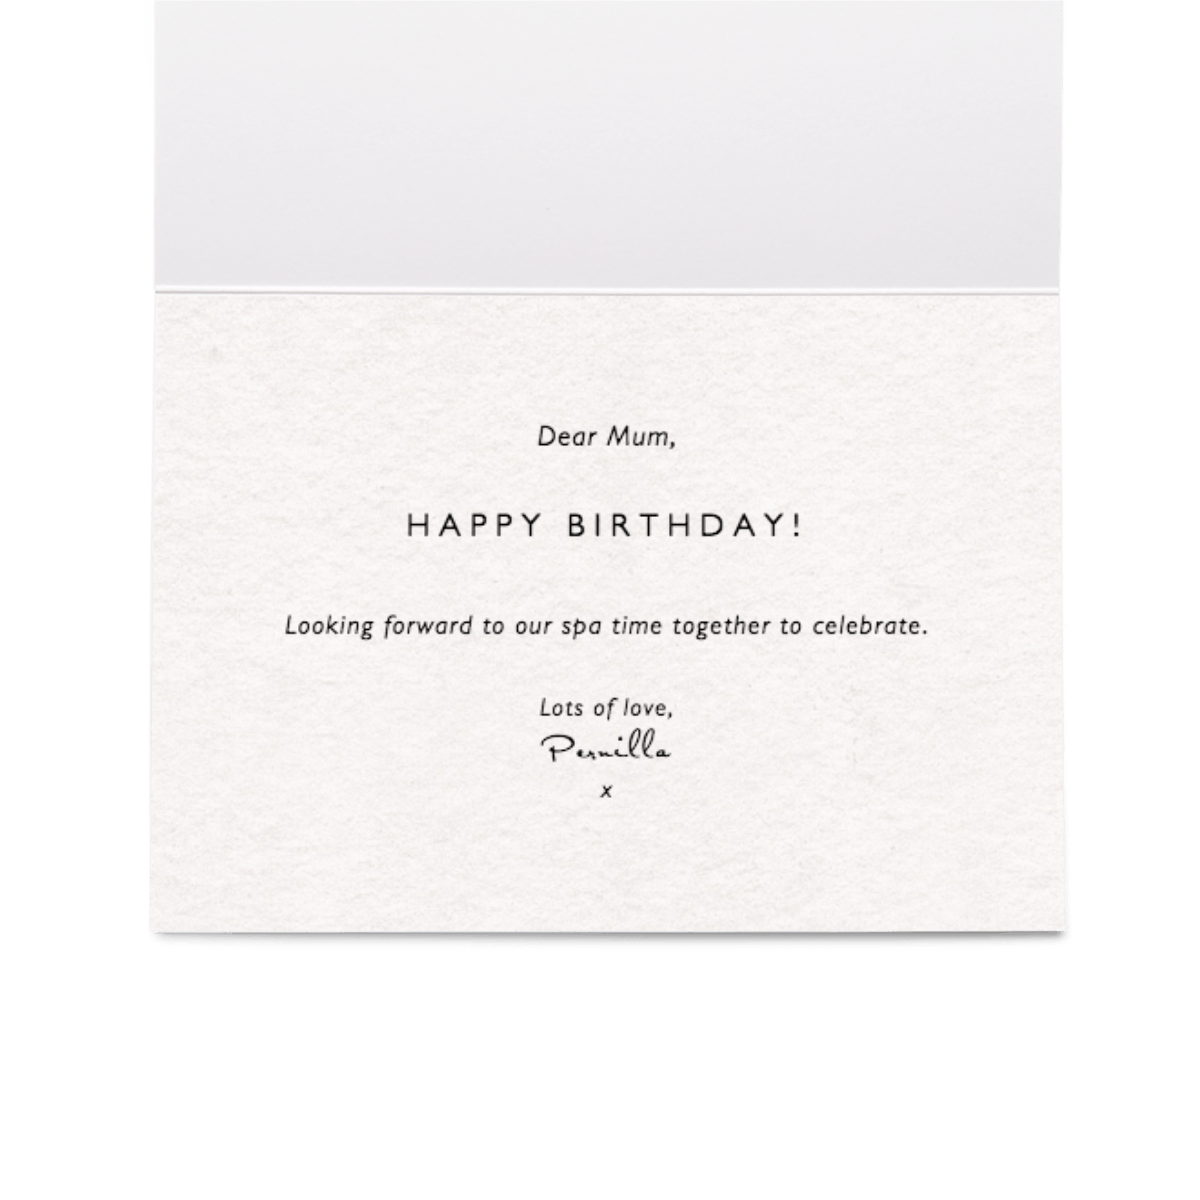 Https%3a%2f%2fwww.papier.com%2fproduct image%2f1425%2f20%2fbirthday wishes 395 inside 1453909875.png?ixlib=rb 1.1